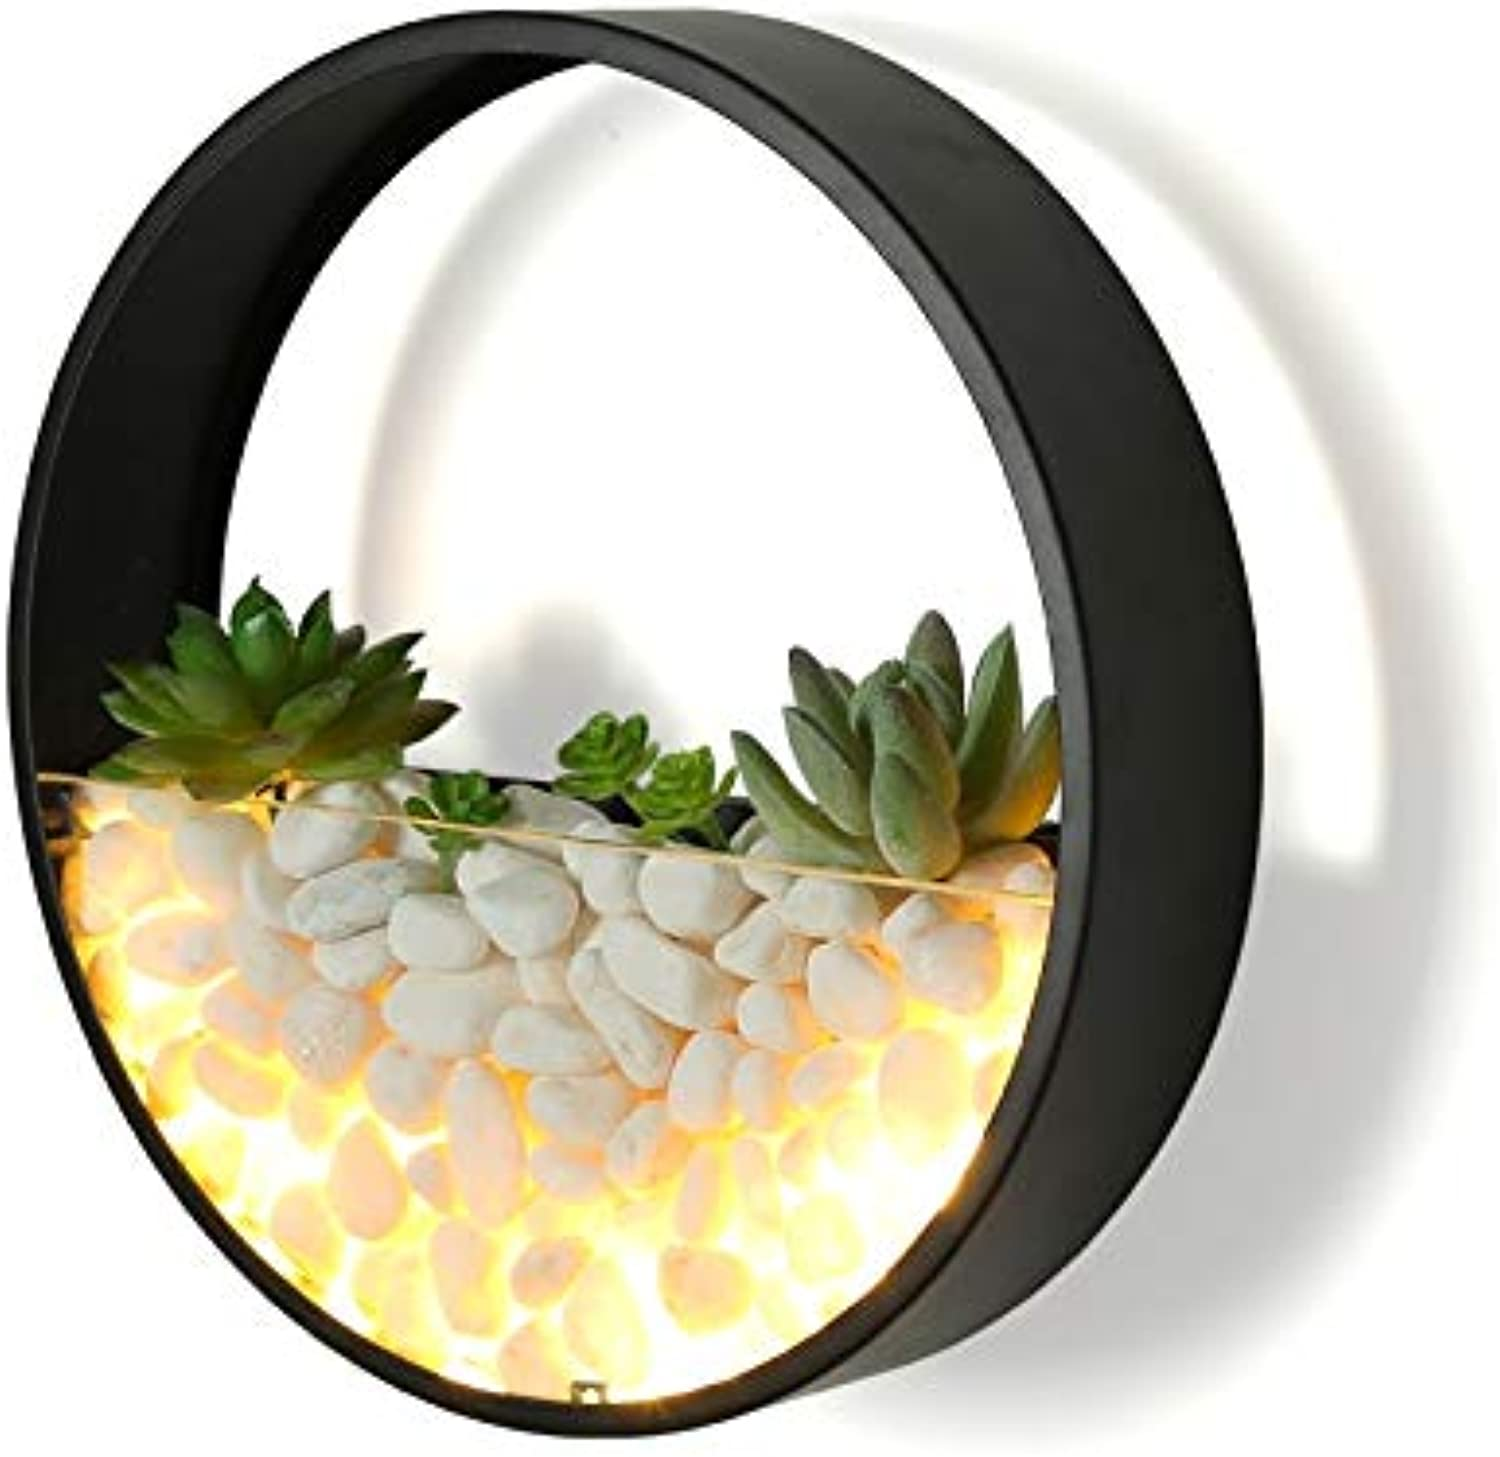 Iron Wall Lamp Round Led Bedside Living Room Bedroom Creative Stone Lamp Wall Light schwarz Decorative Lamp